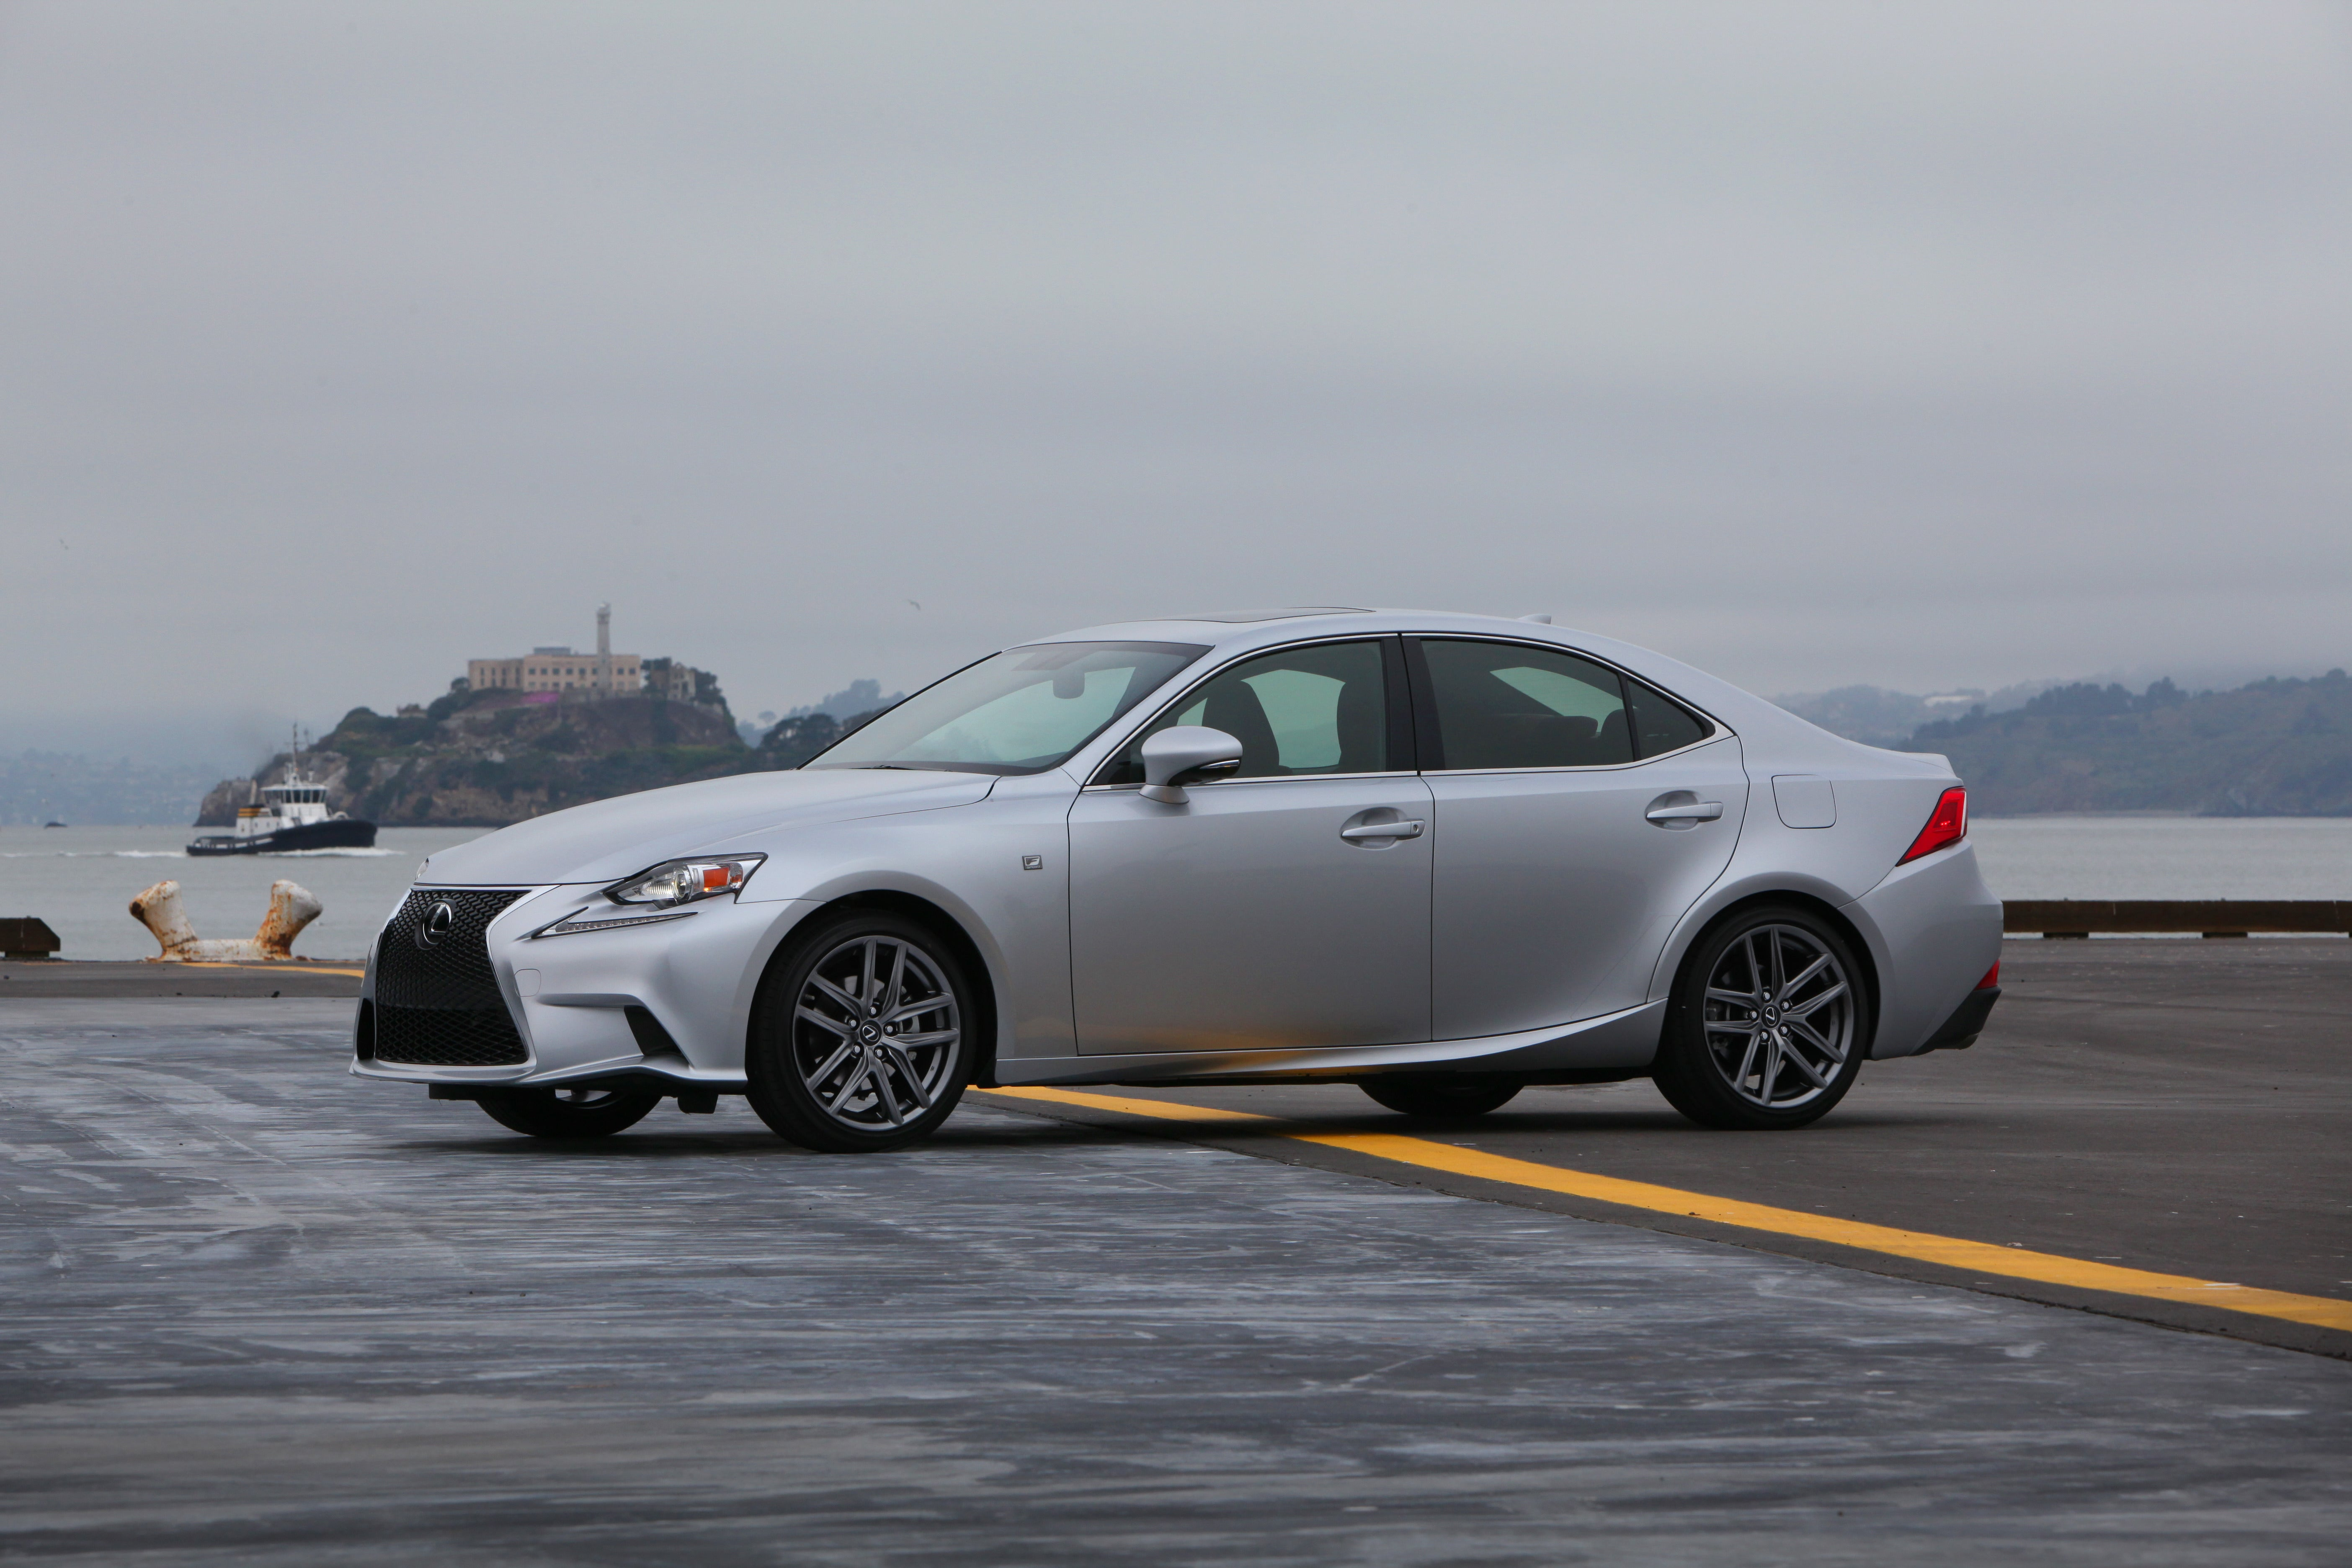 The 2014 Lexus IS 350 is techie without trying too hard | PCWorld